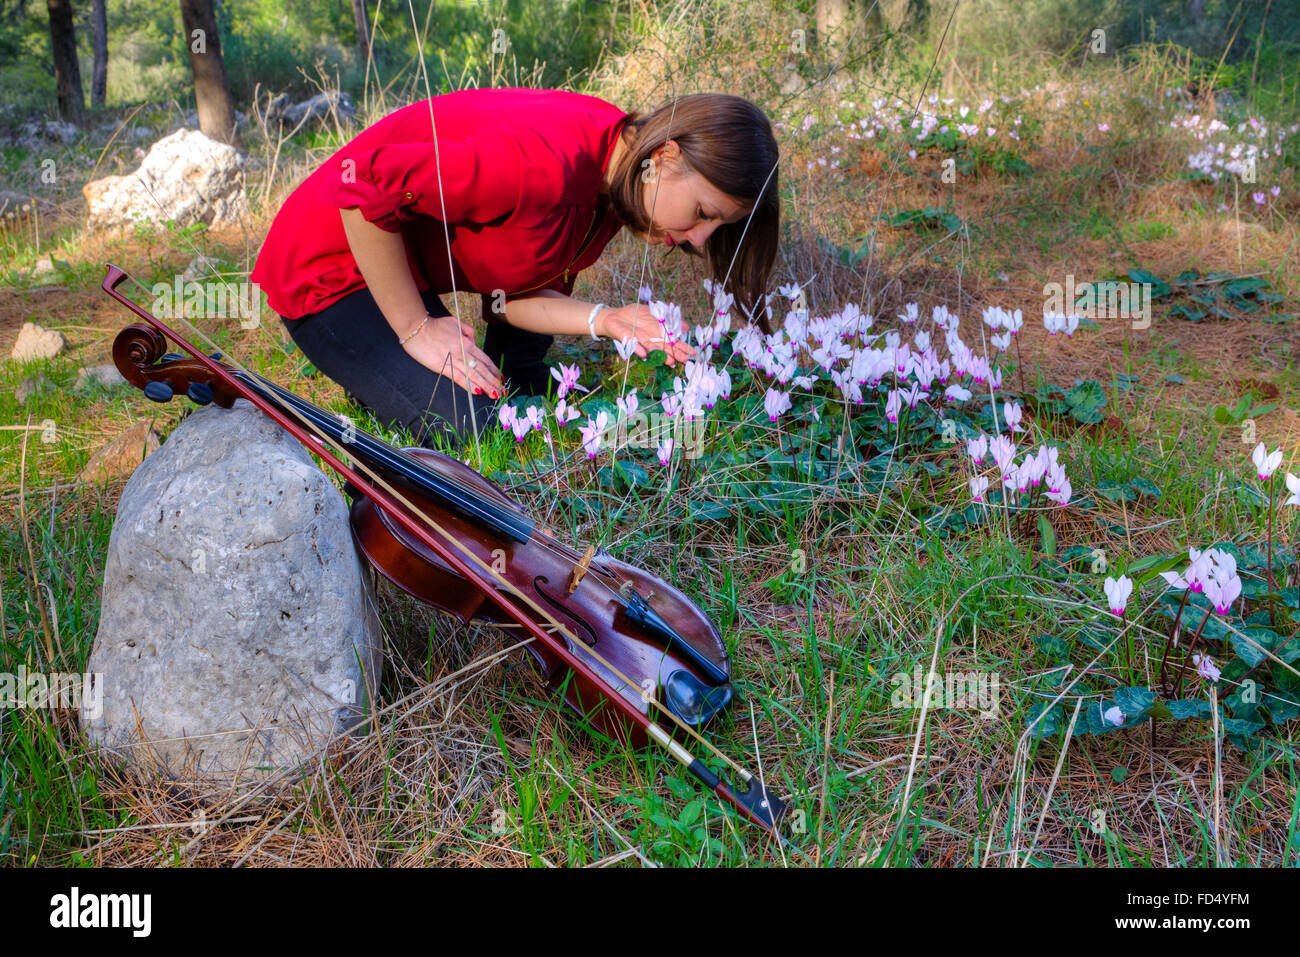 Girl has put violin and collects flowers. Little depth of field - Stock Image